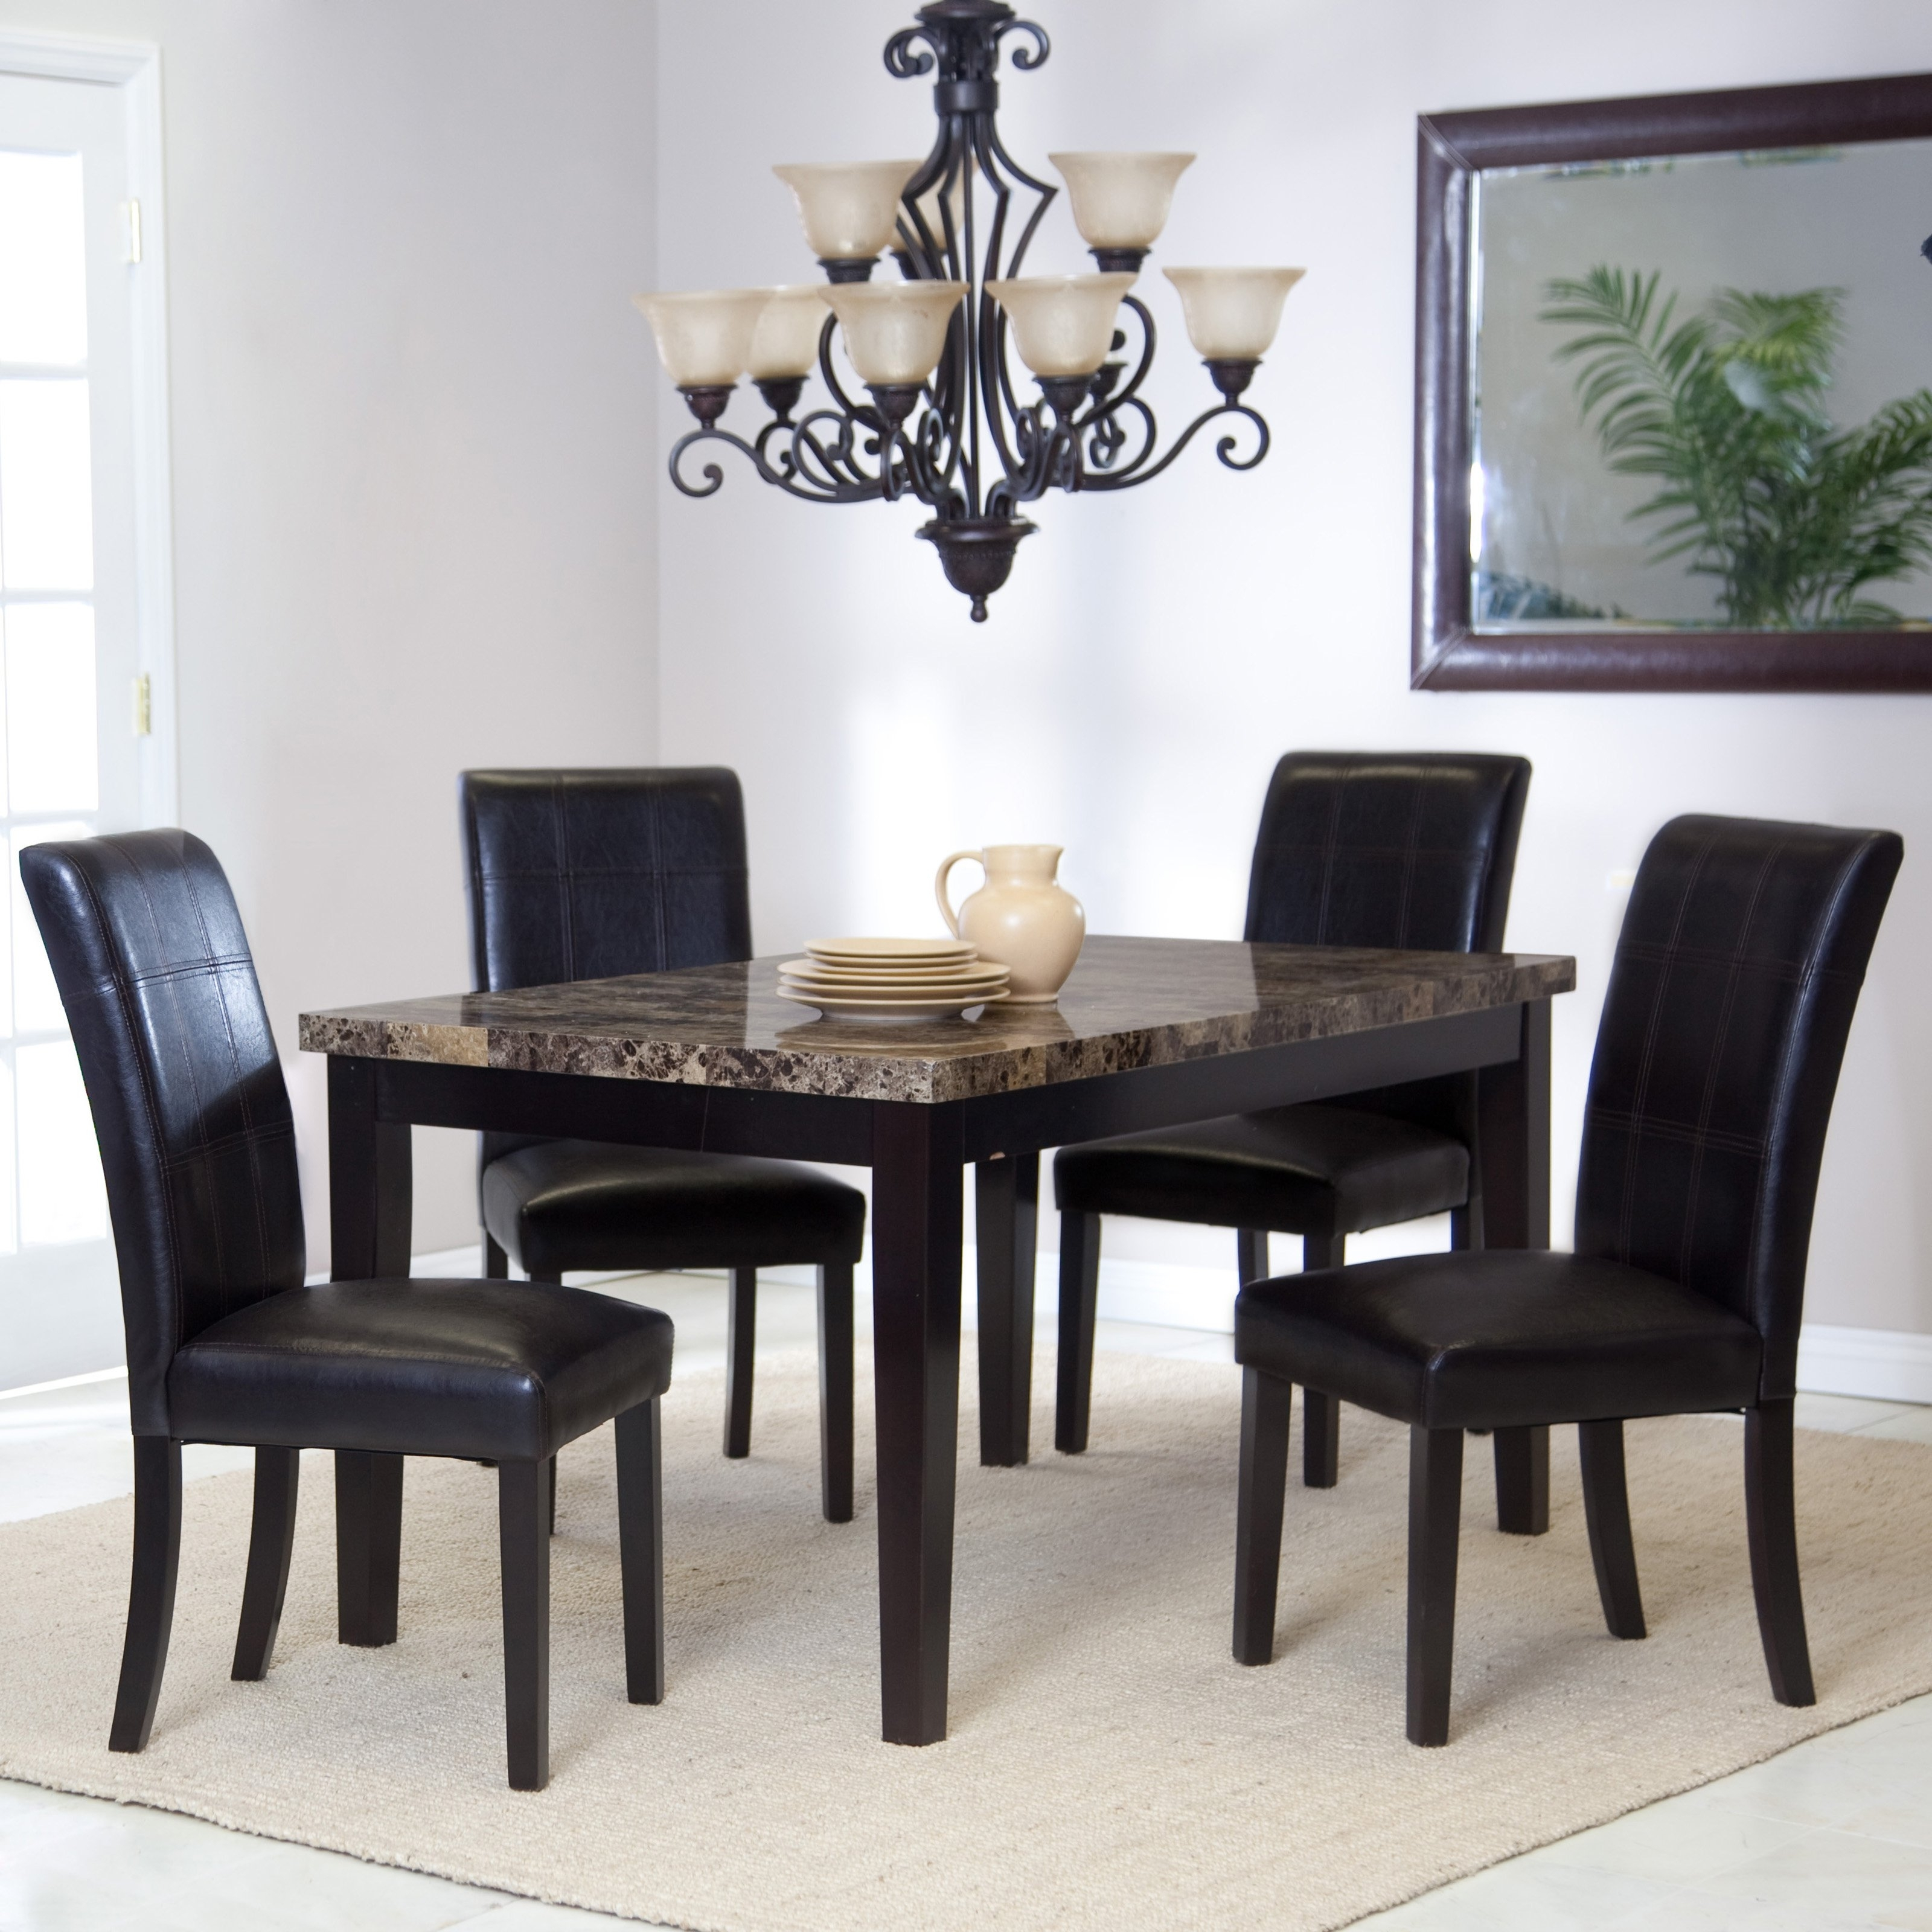 Palazzo 5 Piece Dining Set | Hayneedle Pertaining To Most Recent Palazzo 3 Piece Dining Table Sets (Image 15 of 20)